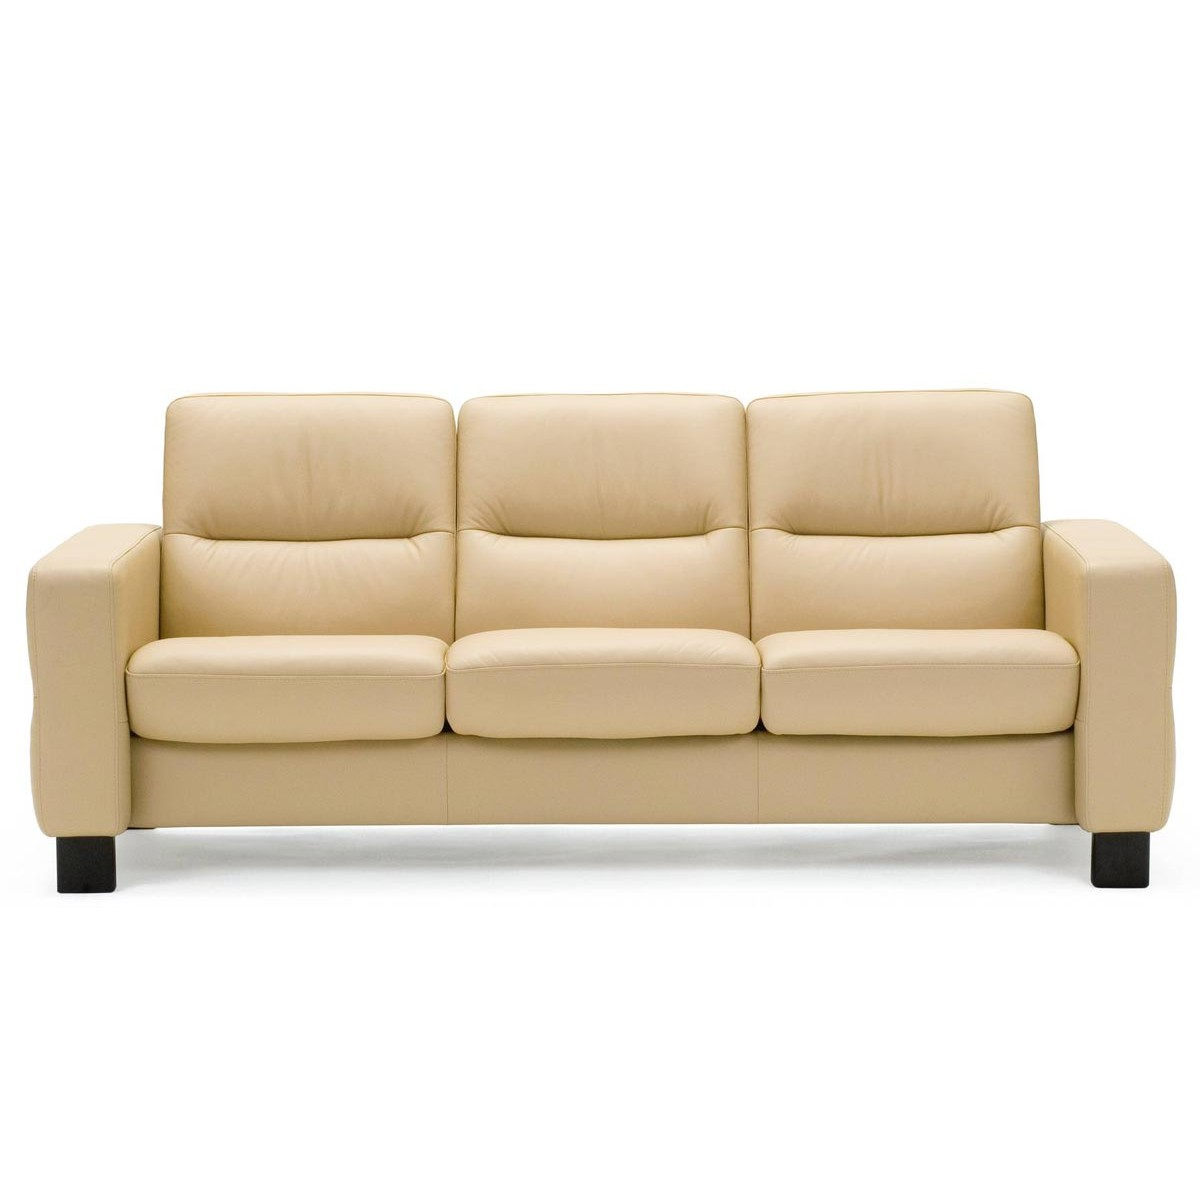 Stressless wave low back sofa from 2 by stressless for Sofa 1 5 sitzer